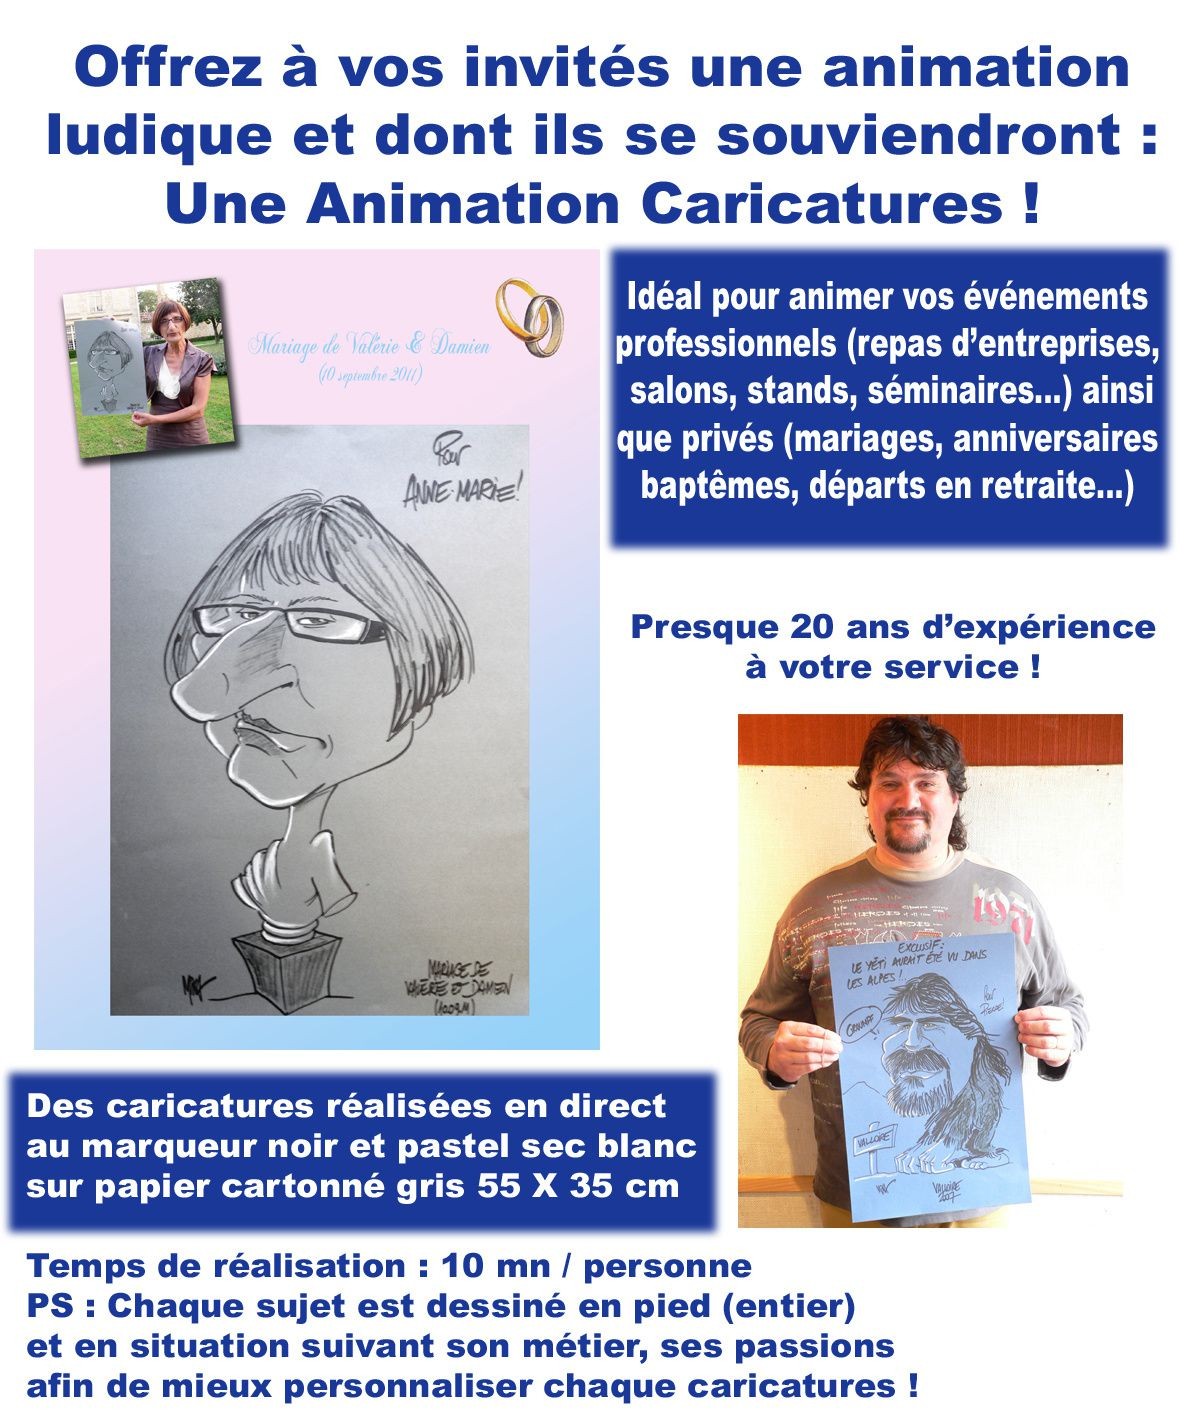 Animation caricatures !